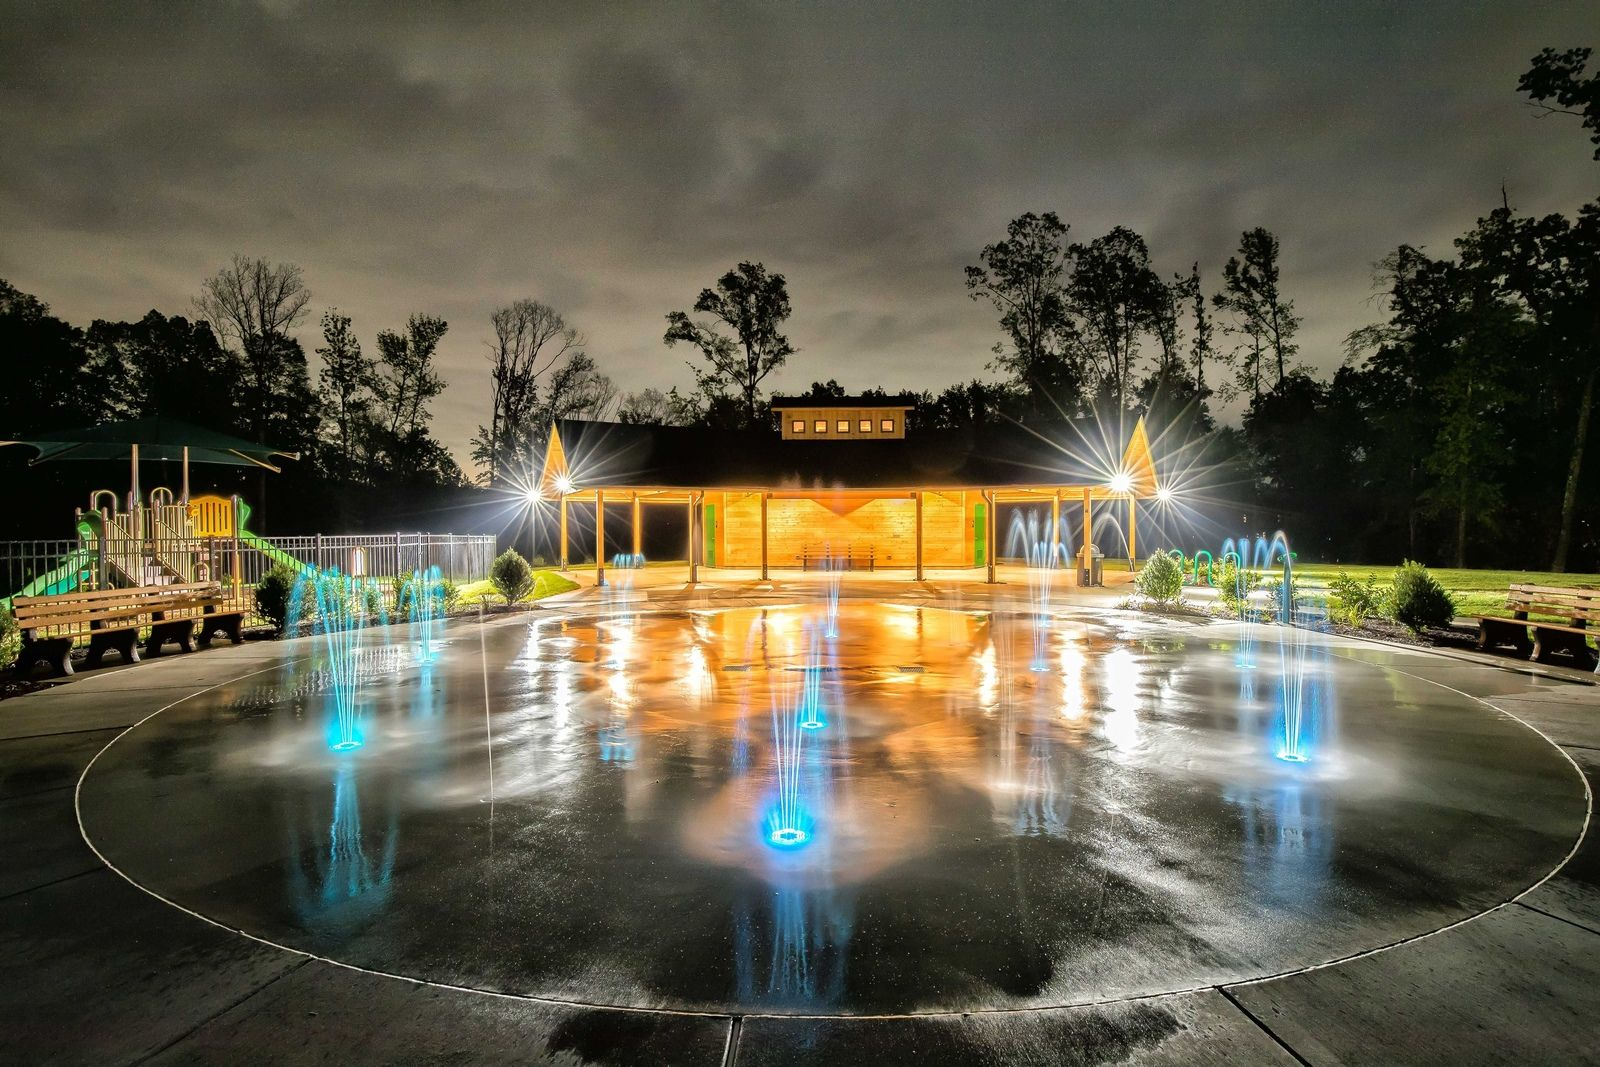 Enjoy our newest features!:The fun doesn't stop at sundown with the new illuminated splash pad and open air pavilion!